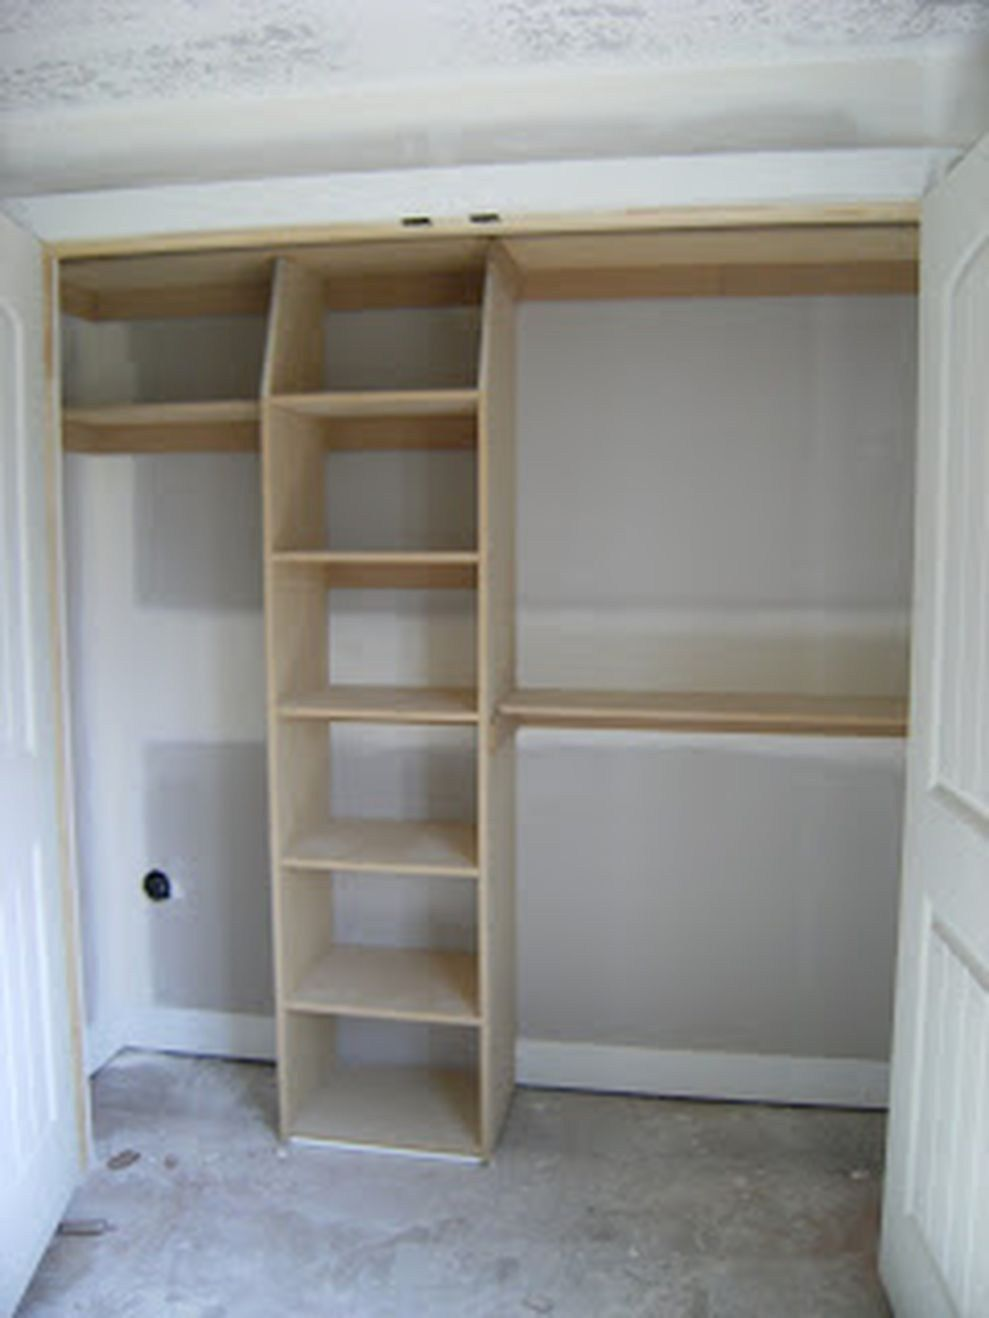 71 Easy and Affordable DIY Wood Closet Shelves Ideas | For ...